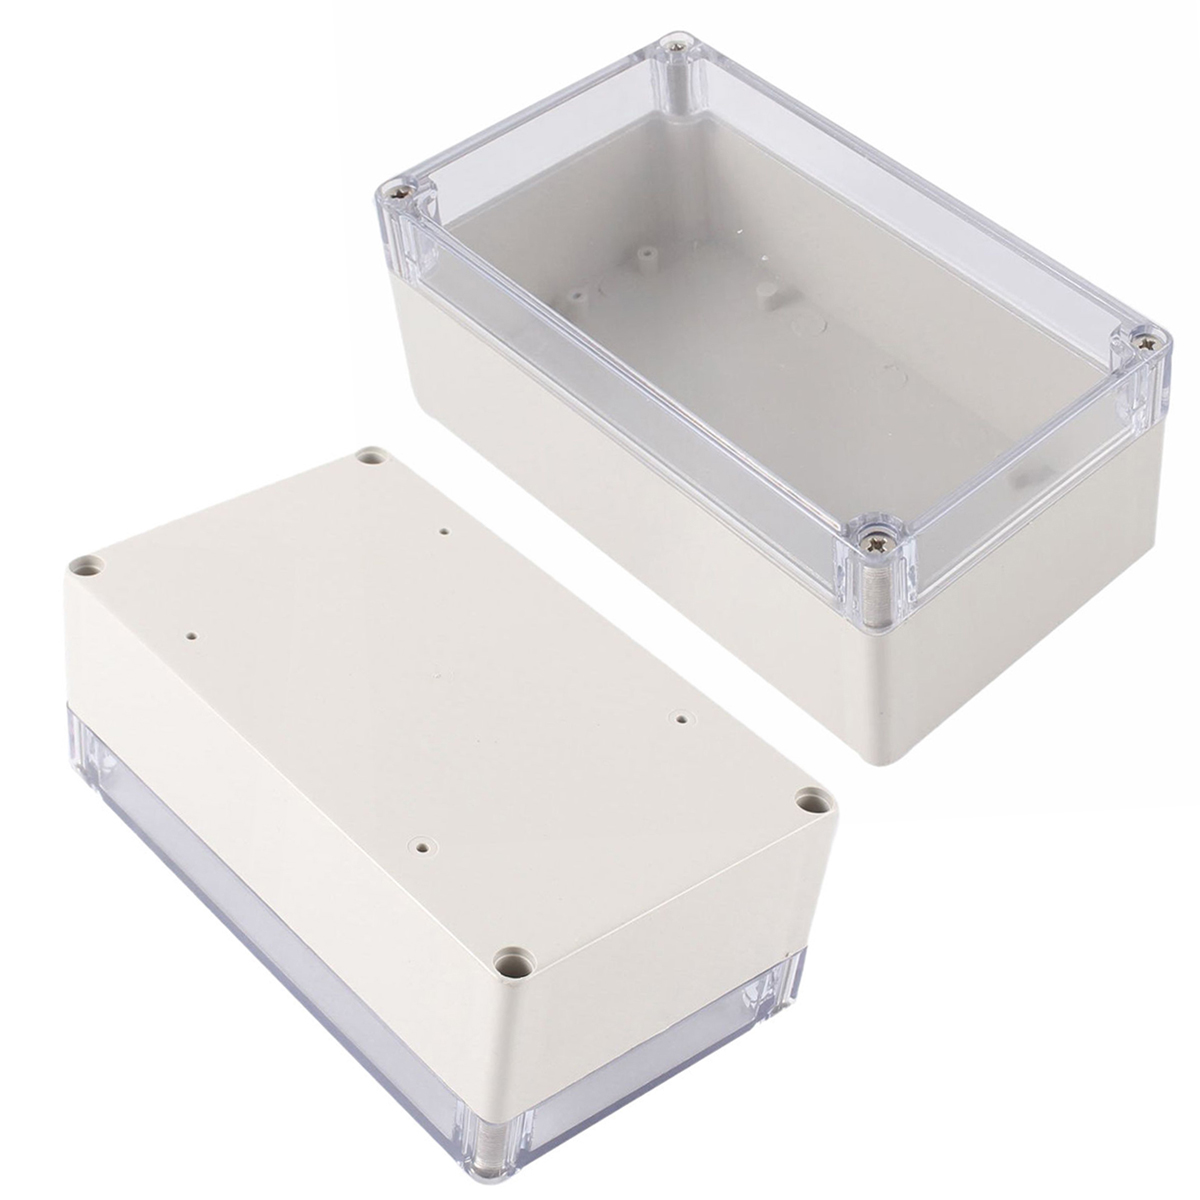 1pc Waterproof Enclose Box Clear Cover Plastic Electronic Project Case 158mm*90mm*60m For Holding Circuit Board sitemap 139 xml